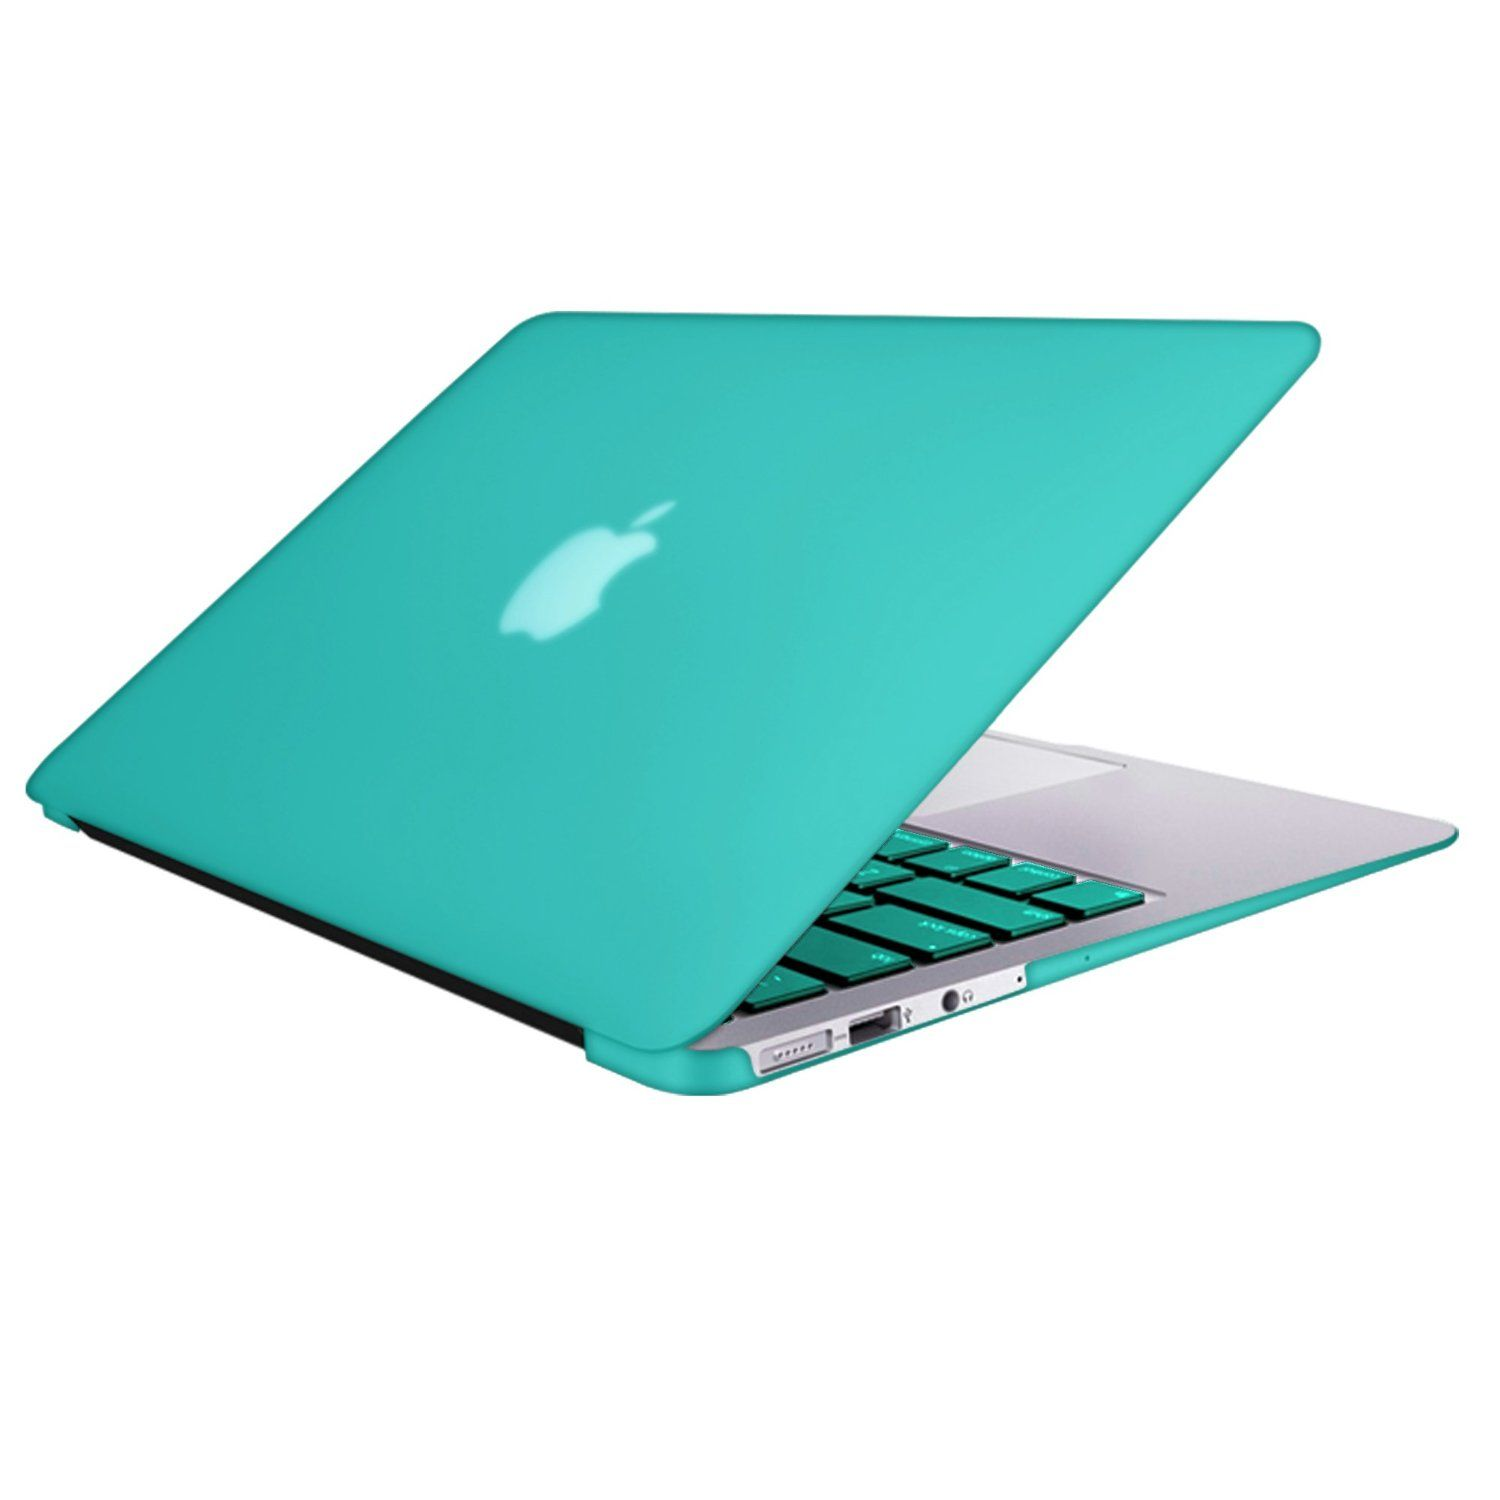 Rubberized Hard Case Cover Shell Keyboard Skin for Macbook Air 13 inch Laptop